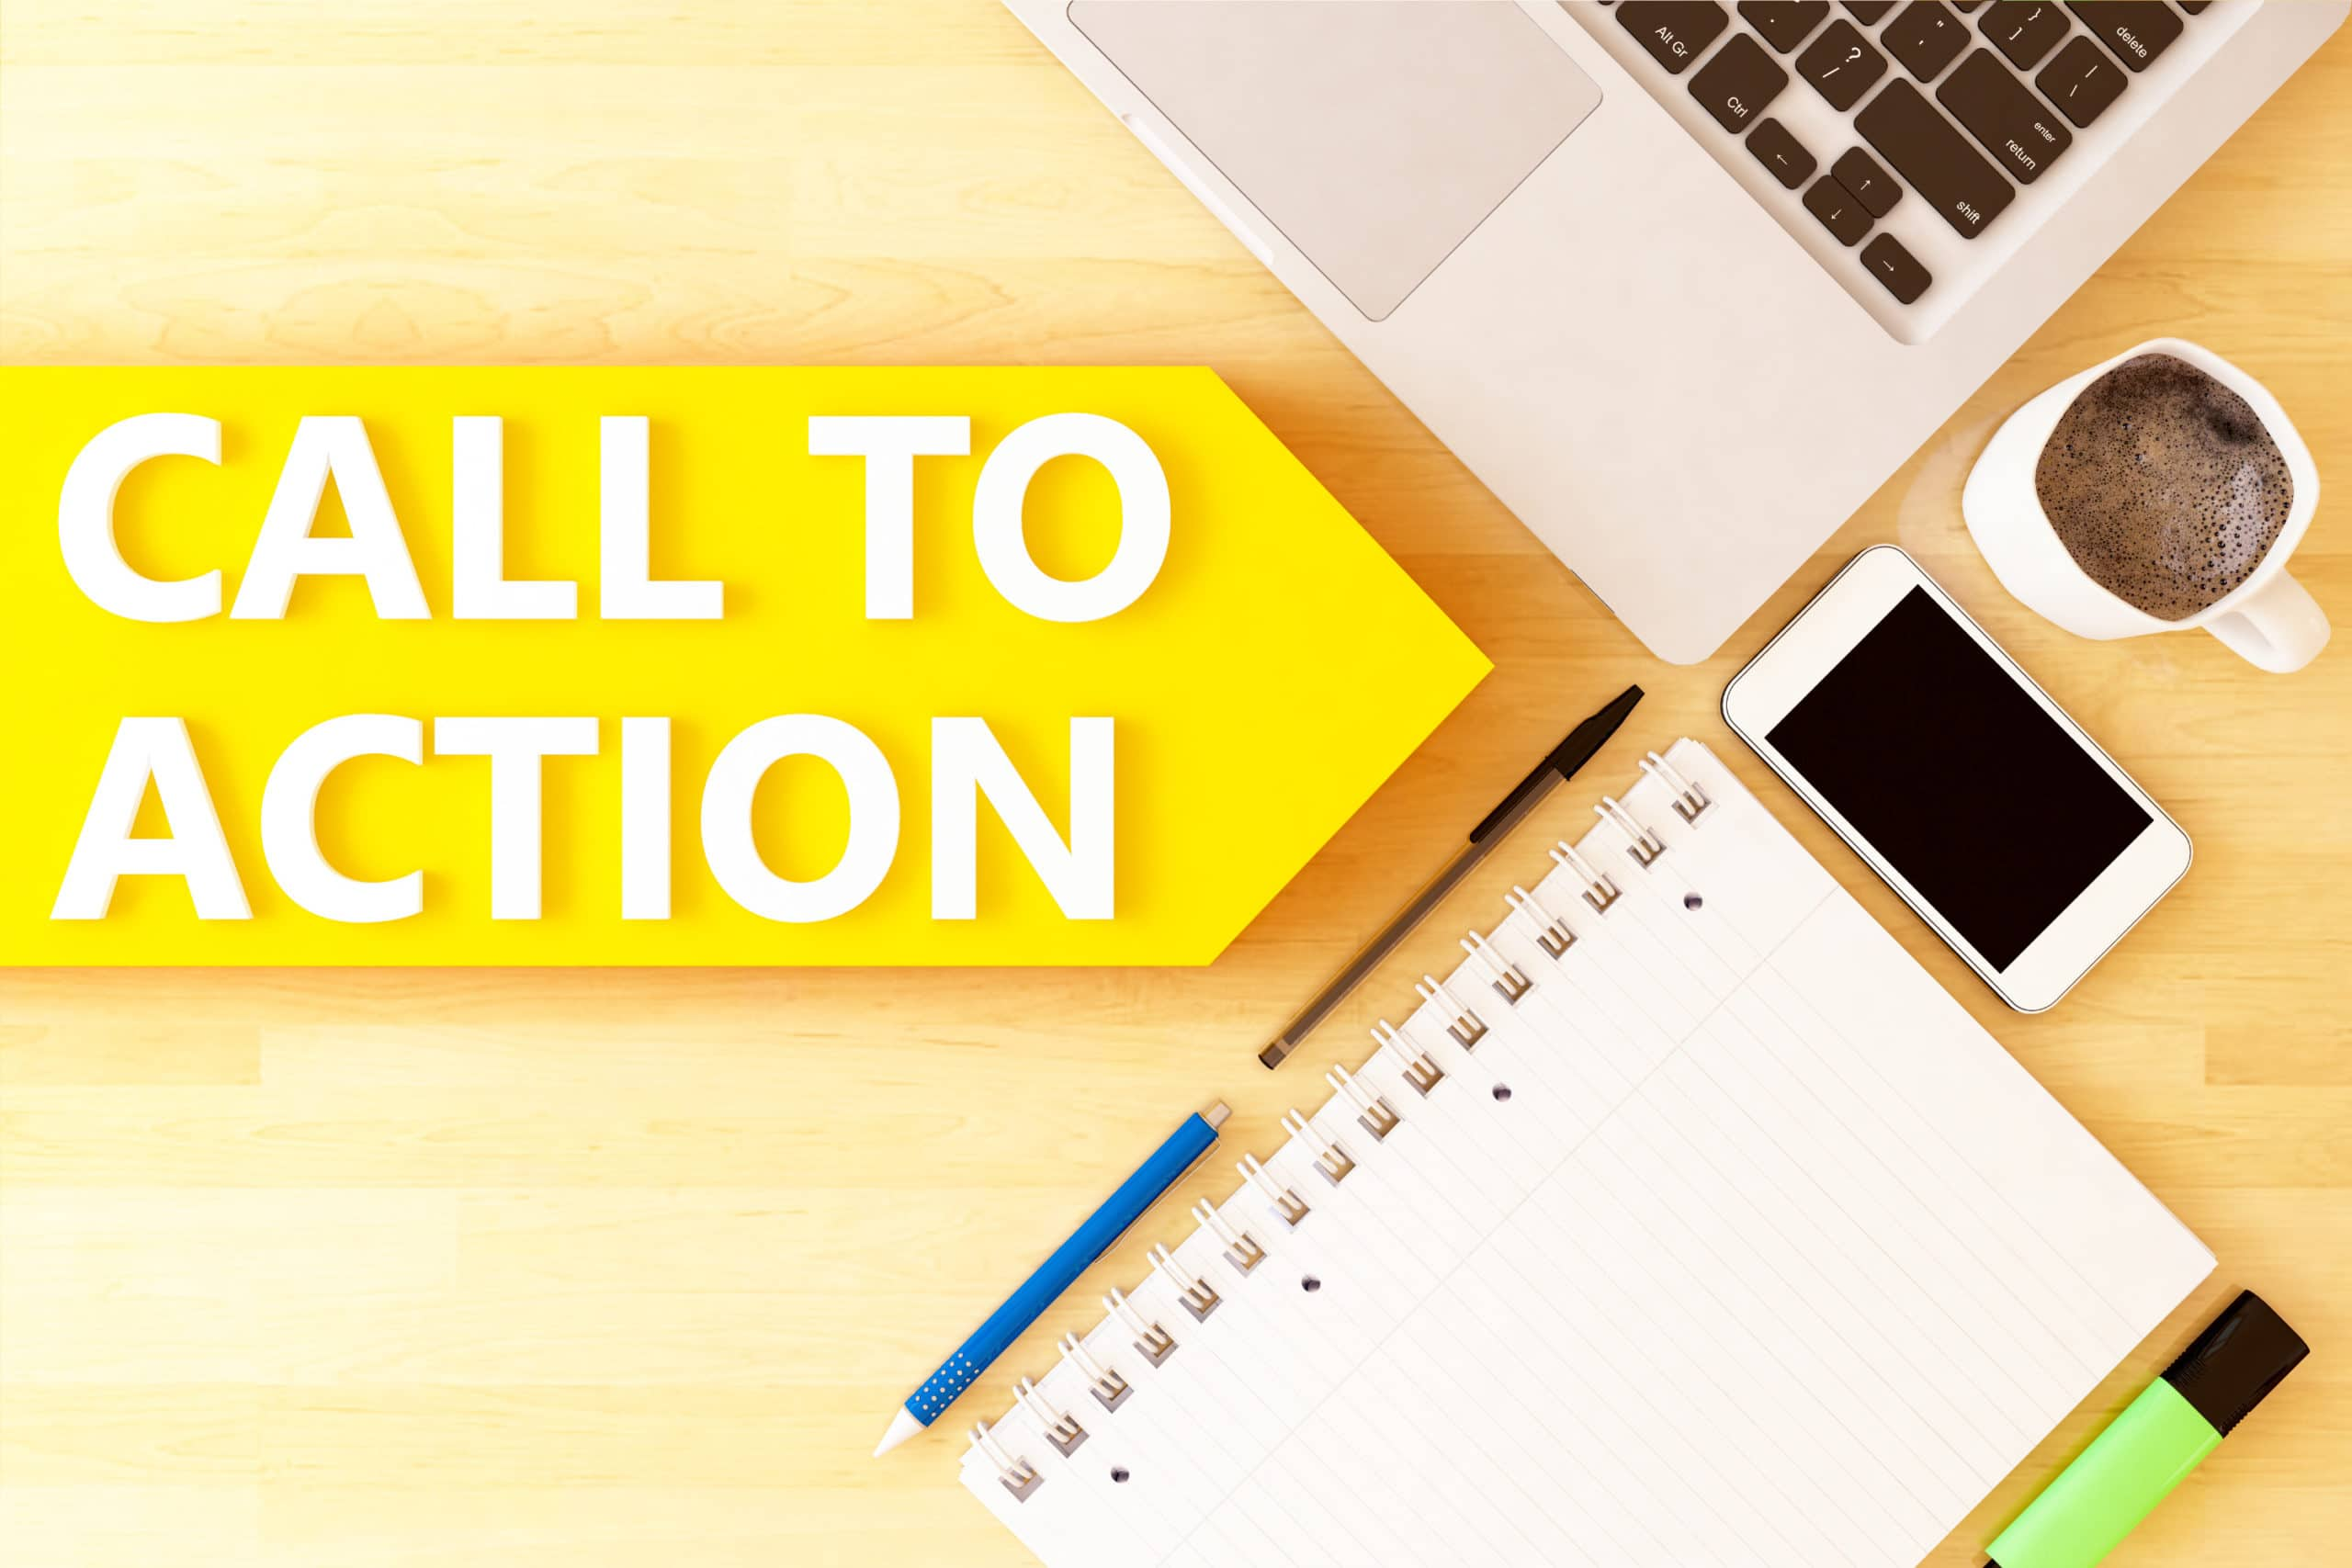 Your website needs a call-to-action